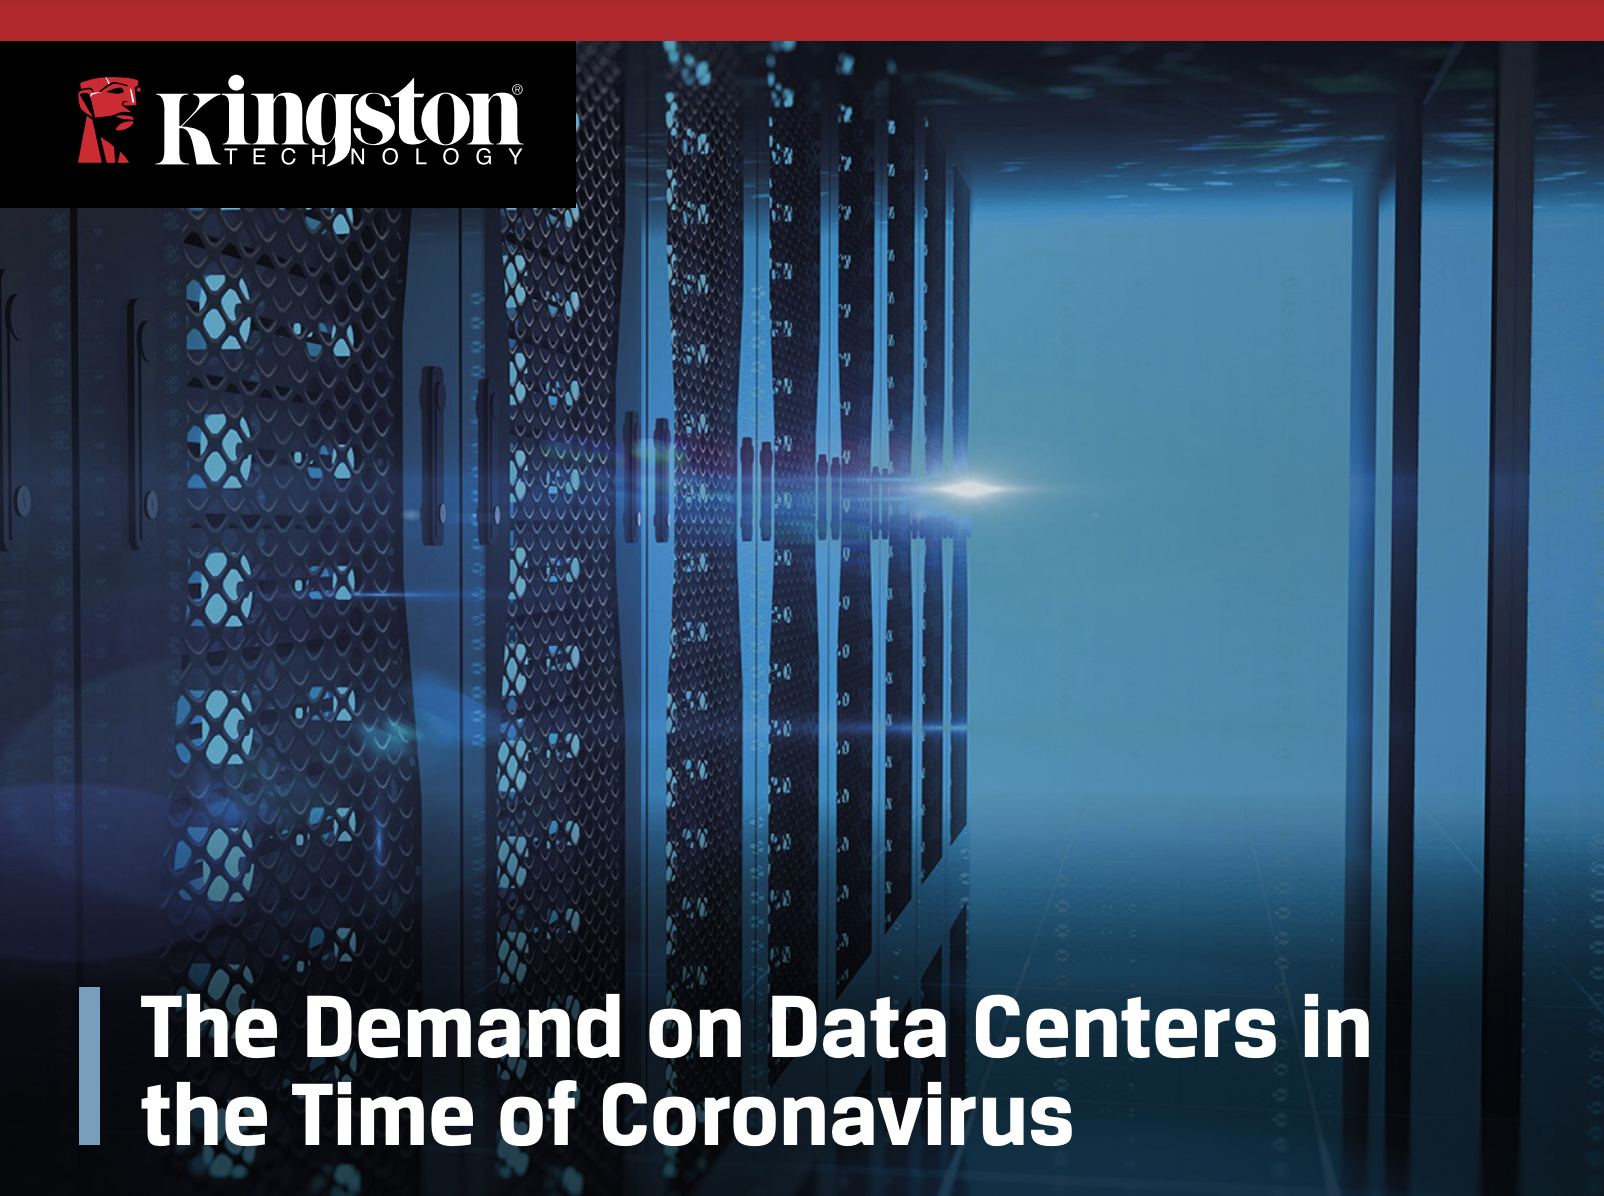 The Demand on Data Centers in the Time of Coronavirus